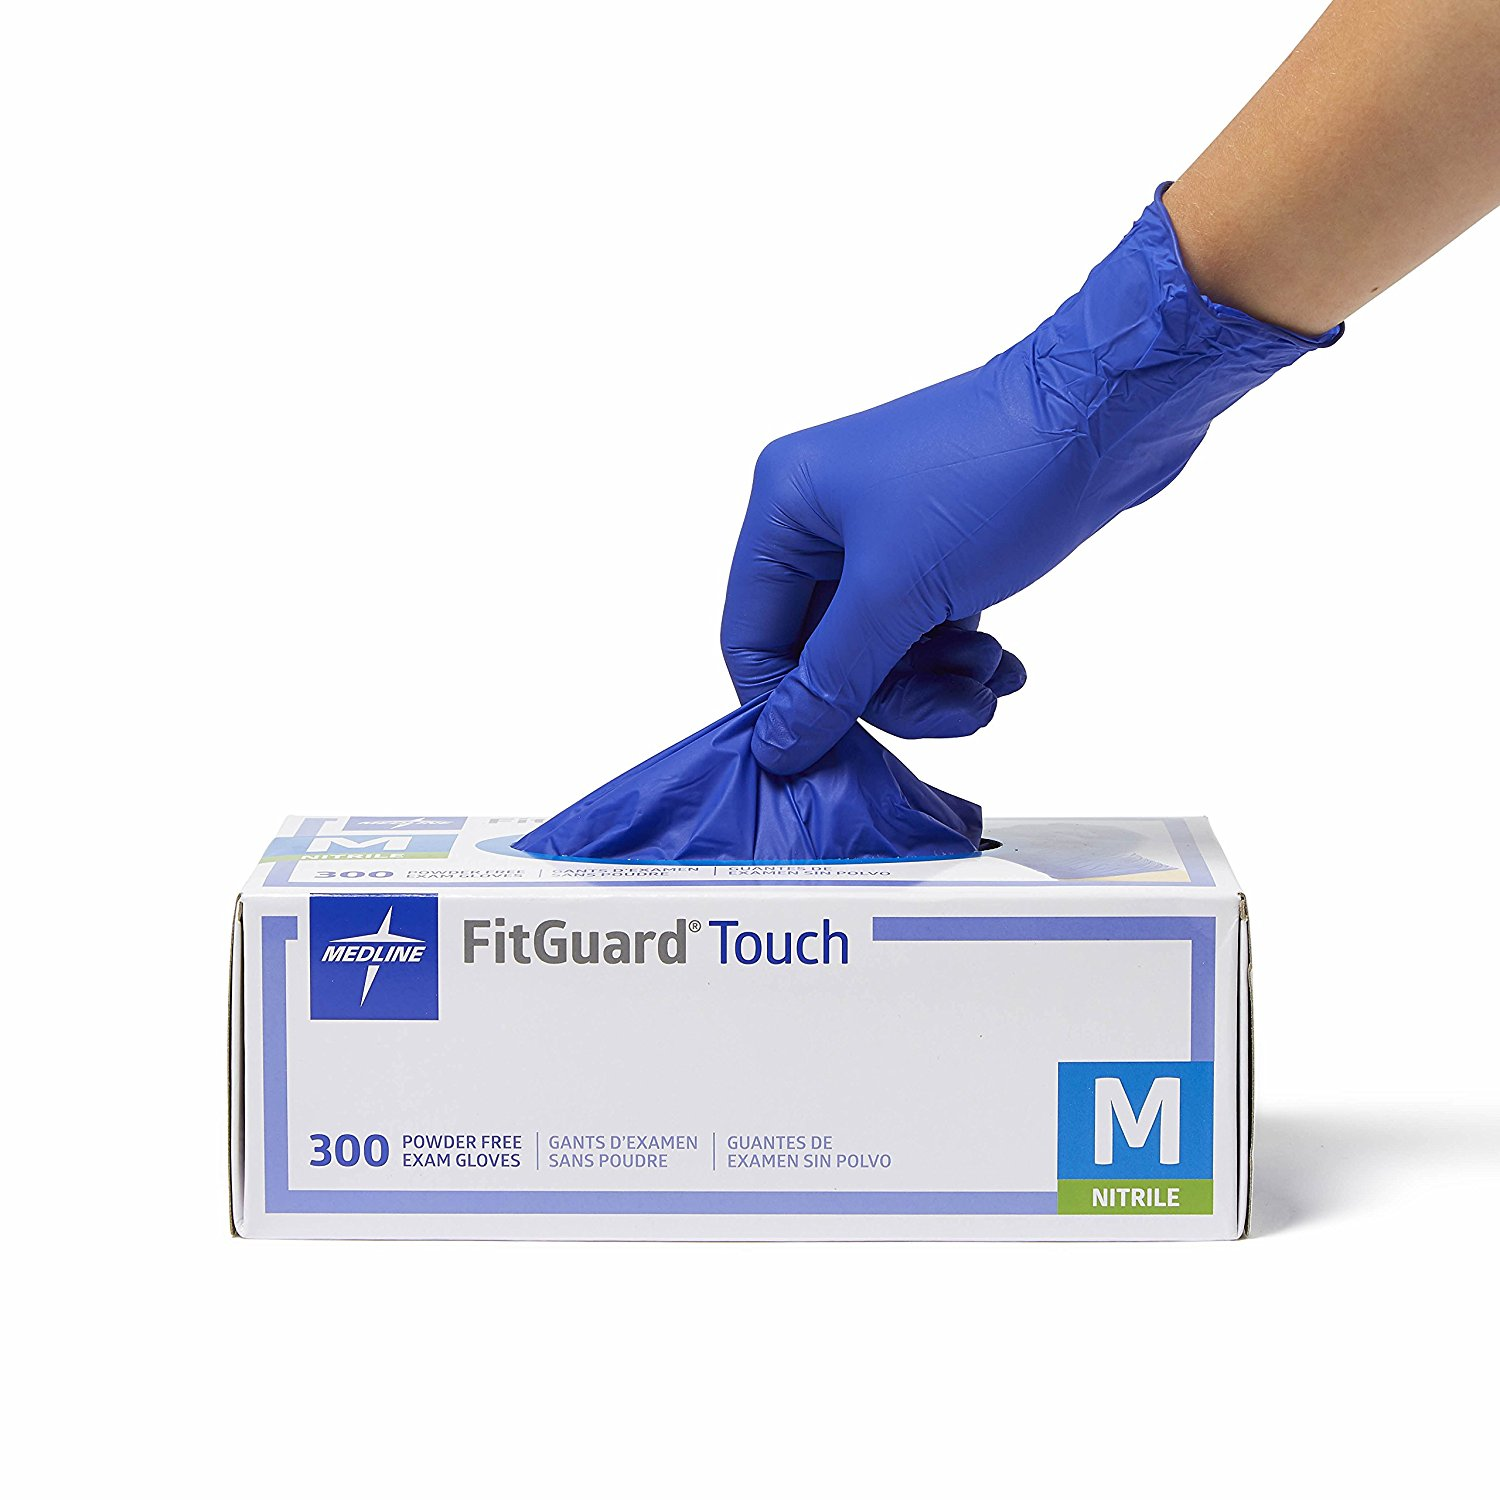 FitGuard® Touch Powder-Free Latex-Free Nitrile Exam Gloves